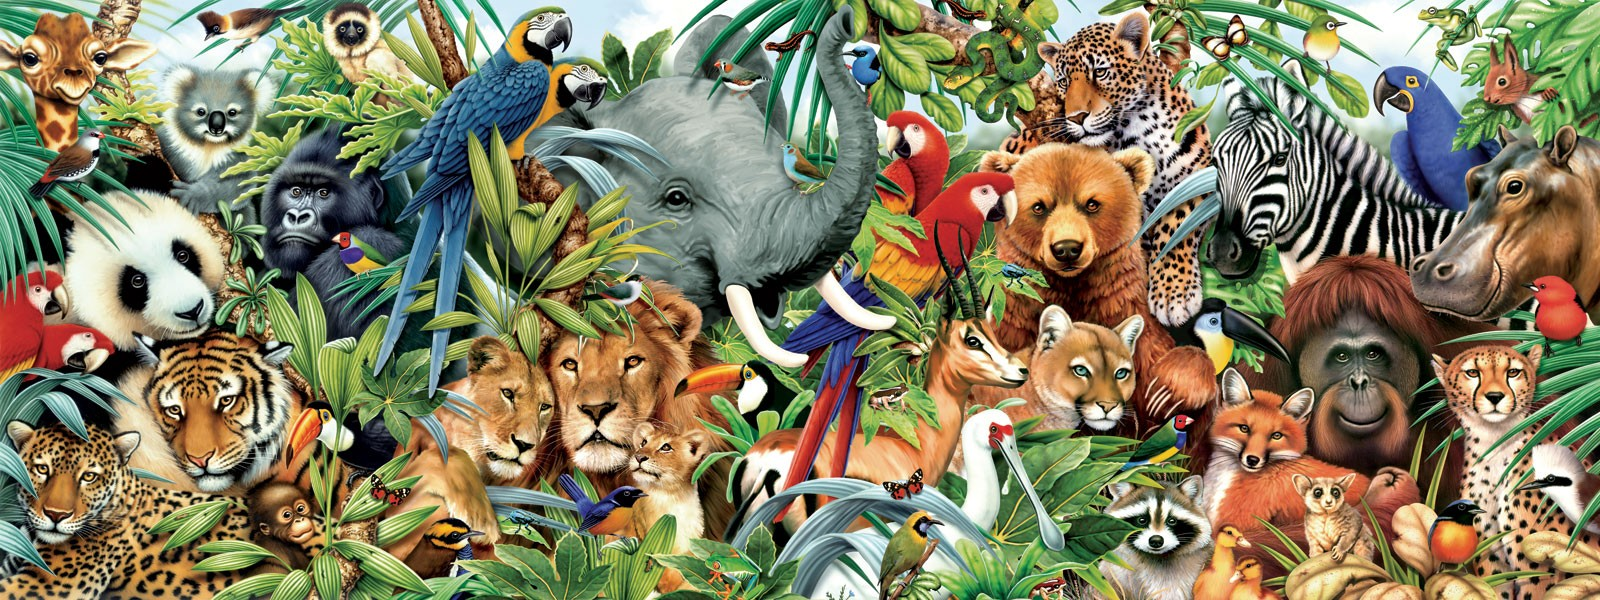 Jungle Animals Real Life Wallpapers Hd